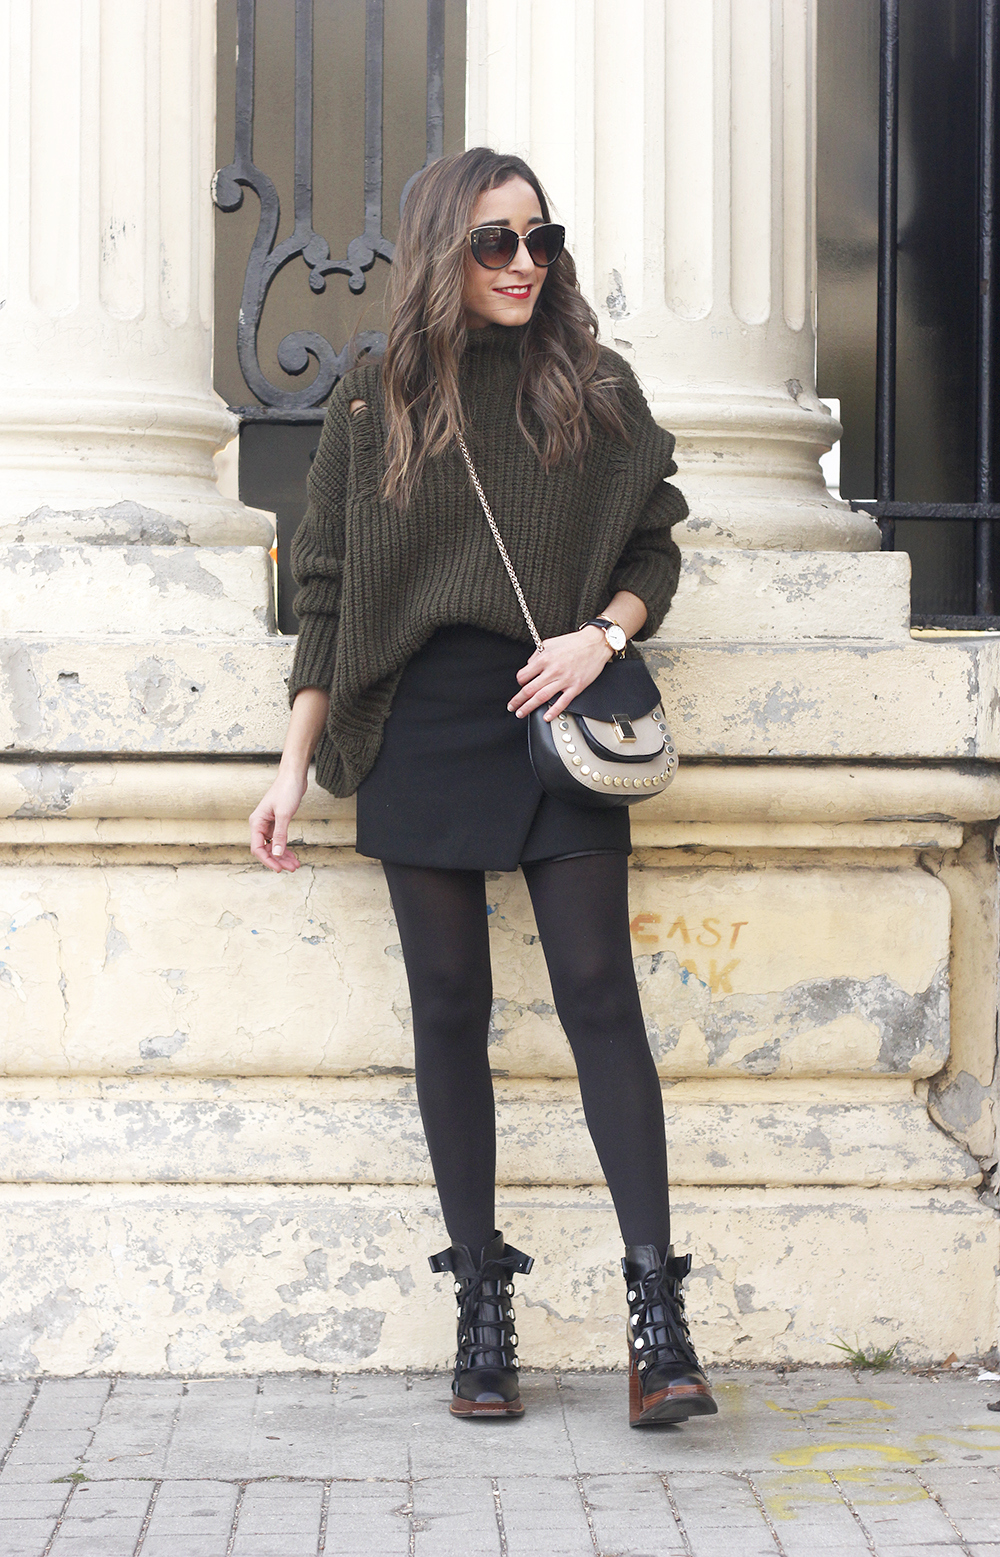 green sweater booties black skirt uterqüe bag style fashion winter outfit02